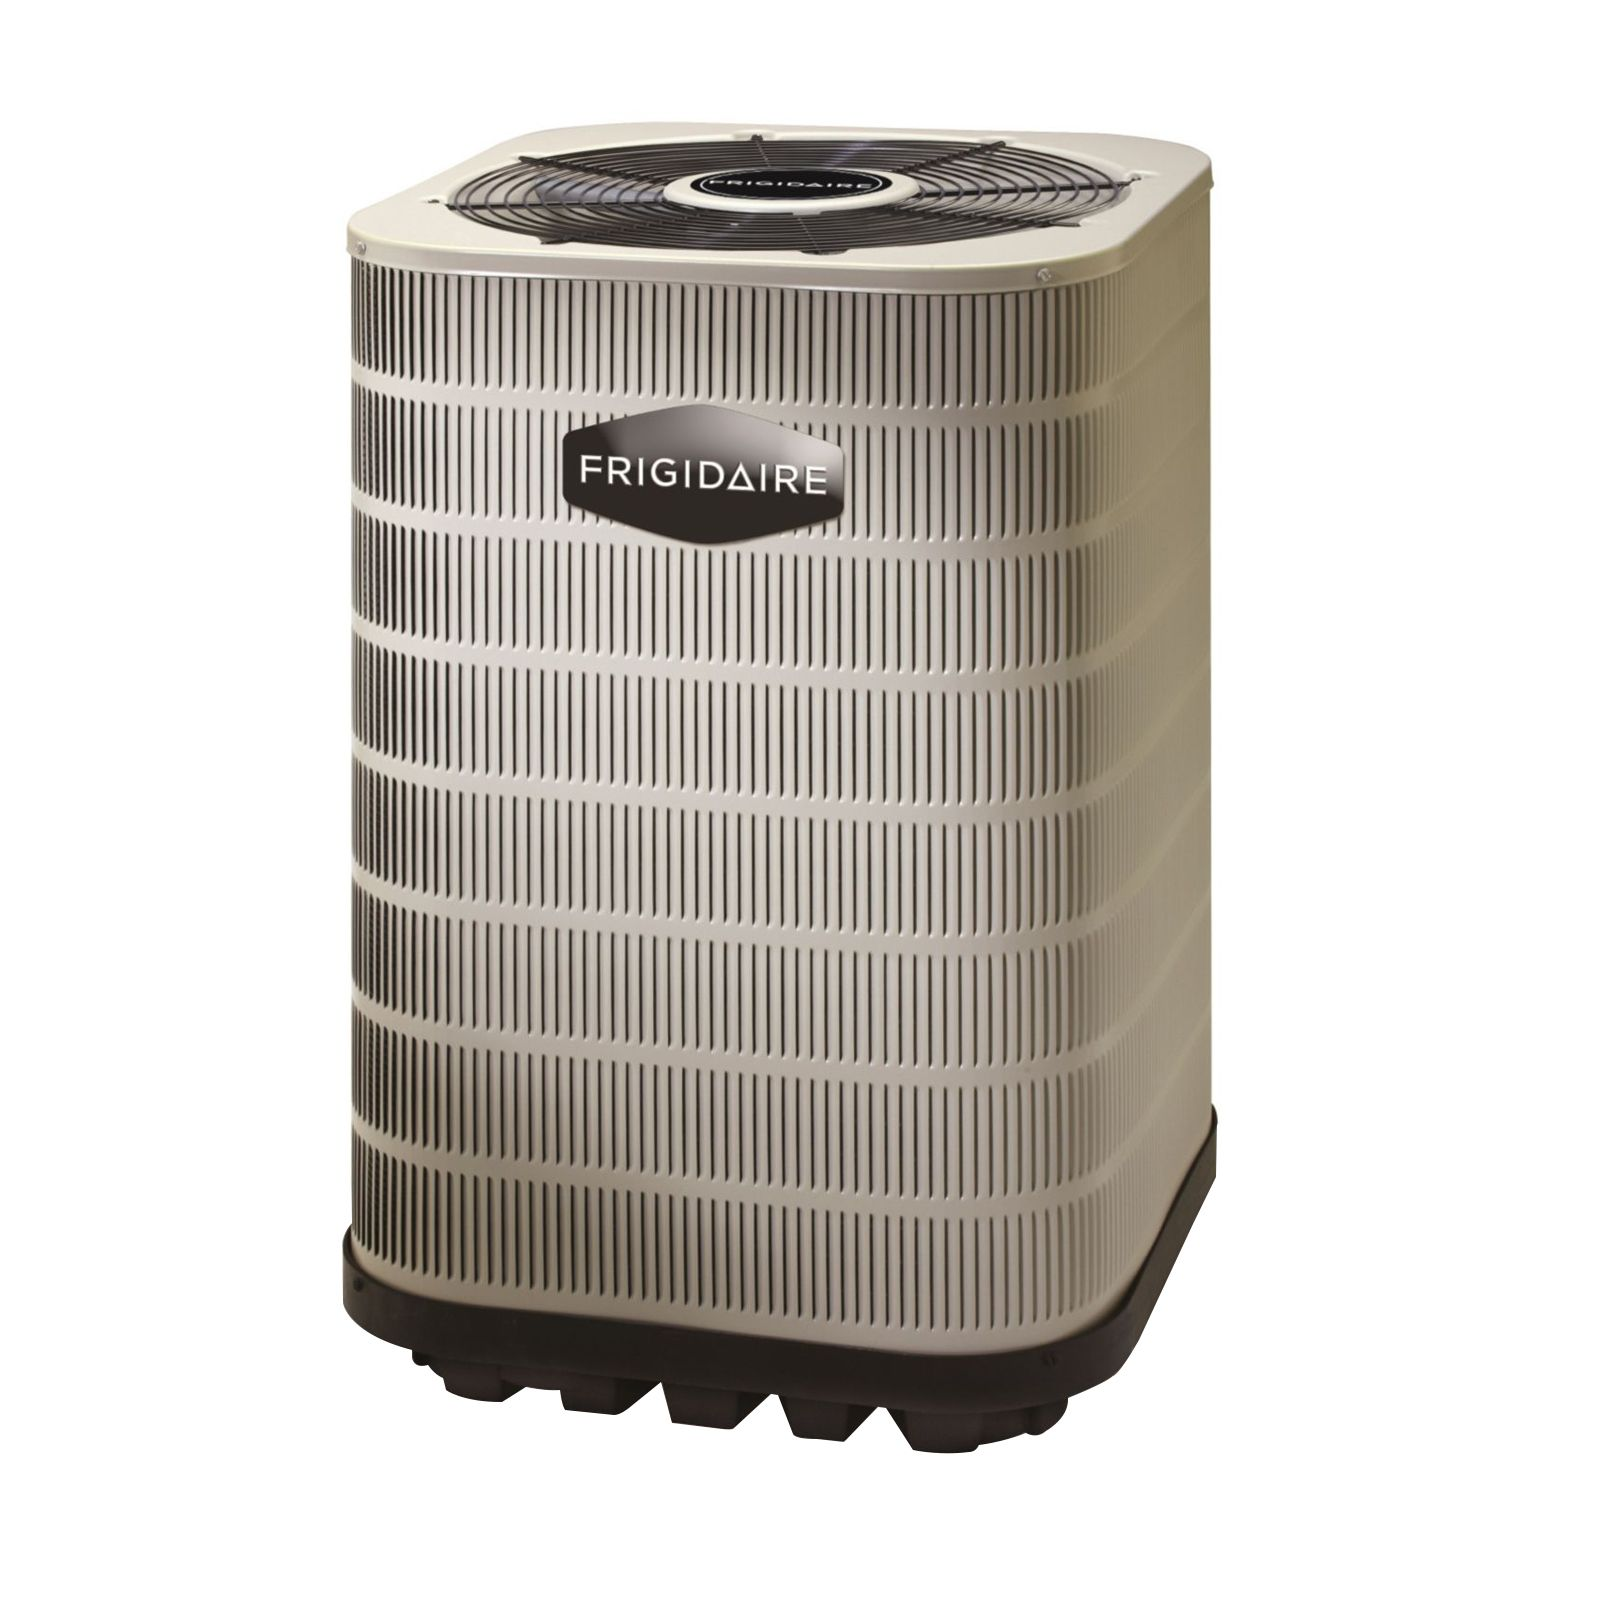 Frigidaire 921981E - ET4BE-018KA - 1 1/2 Ton 14 SEER High Efficiency Heat Pump, R410A